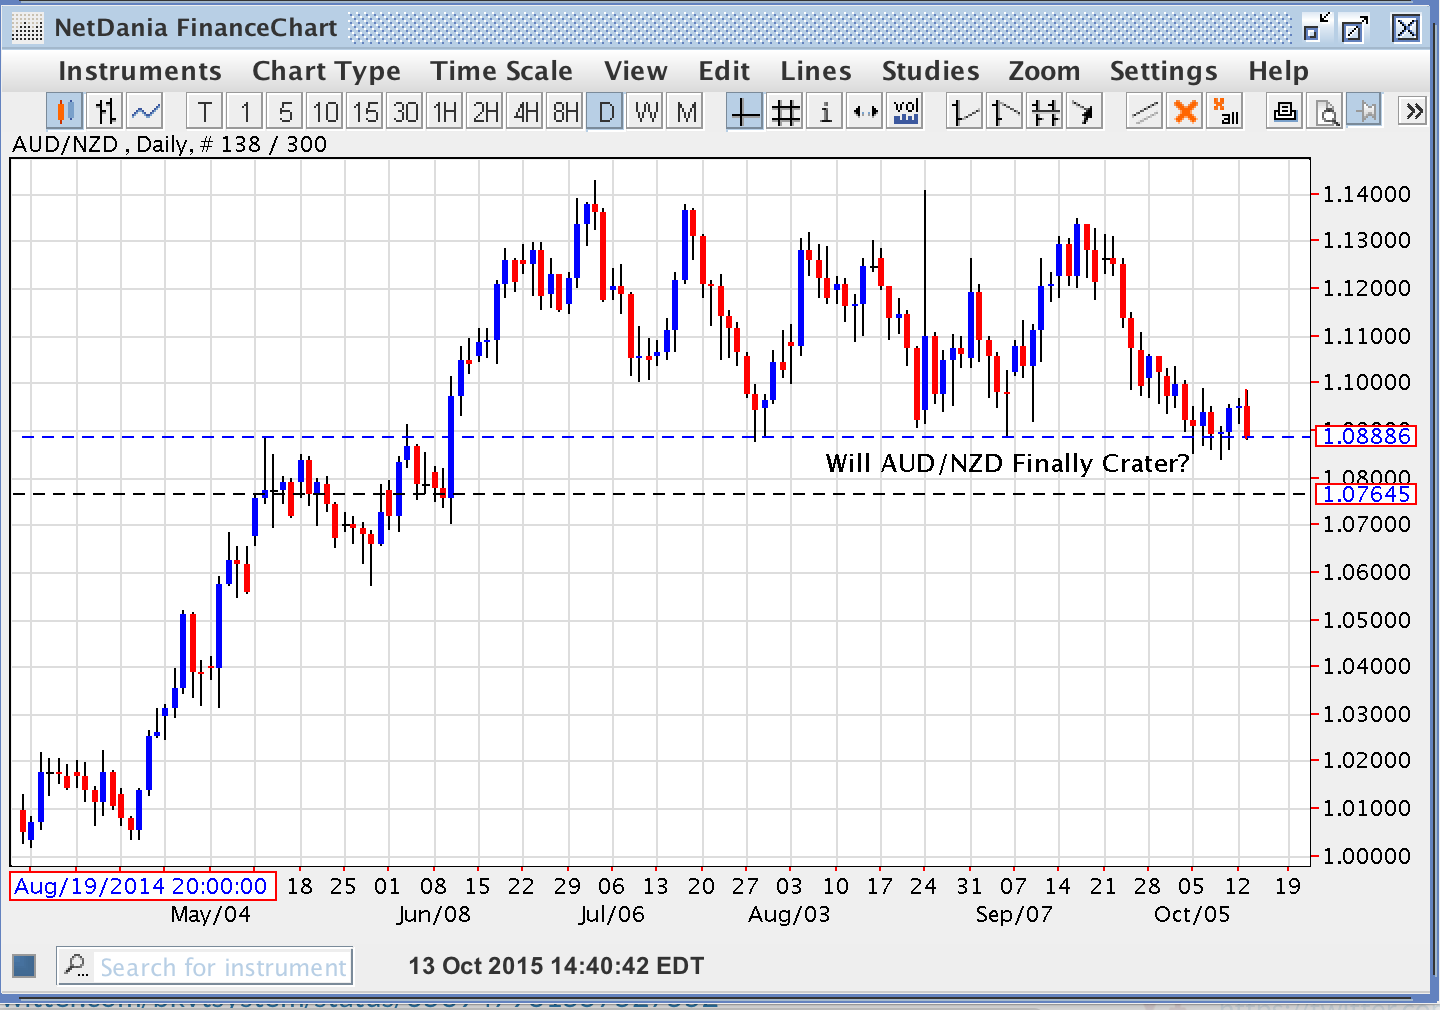 Will AUD/NZD Finally Crater?